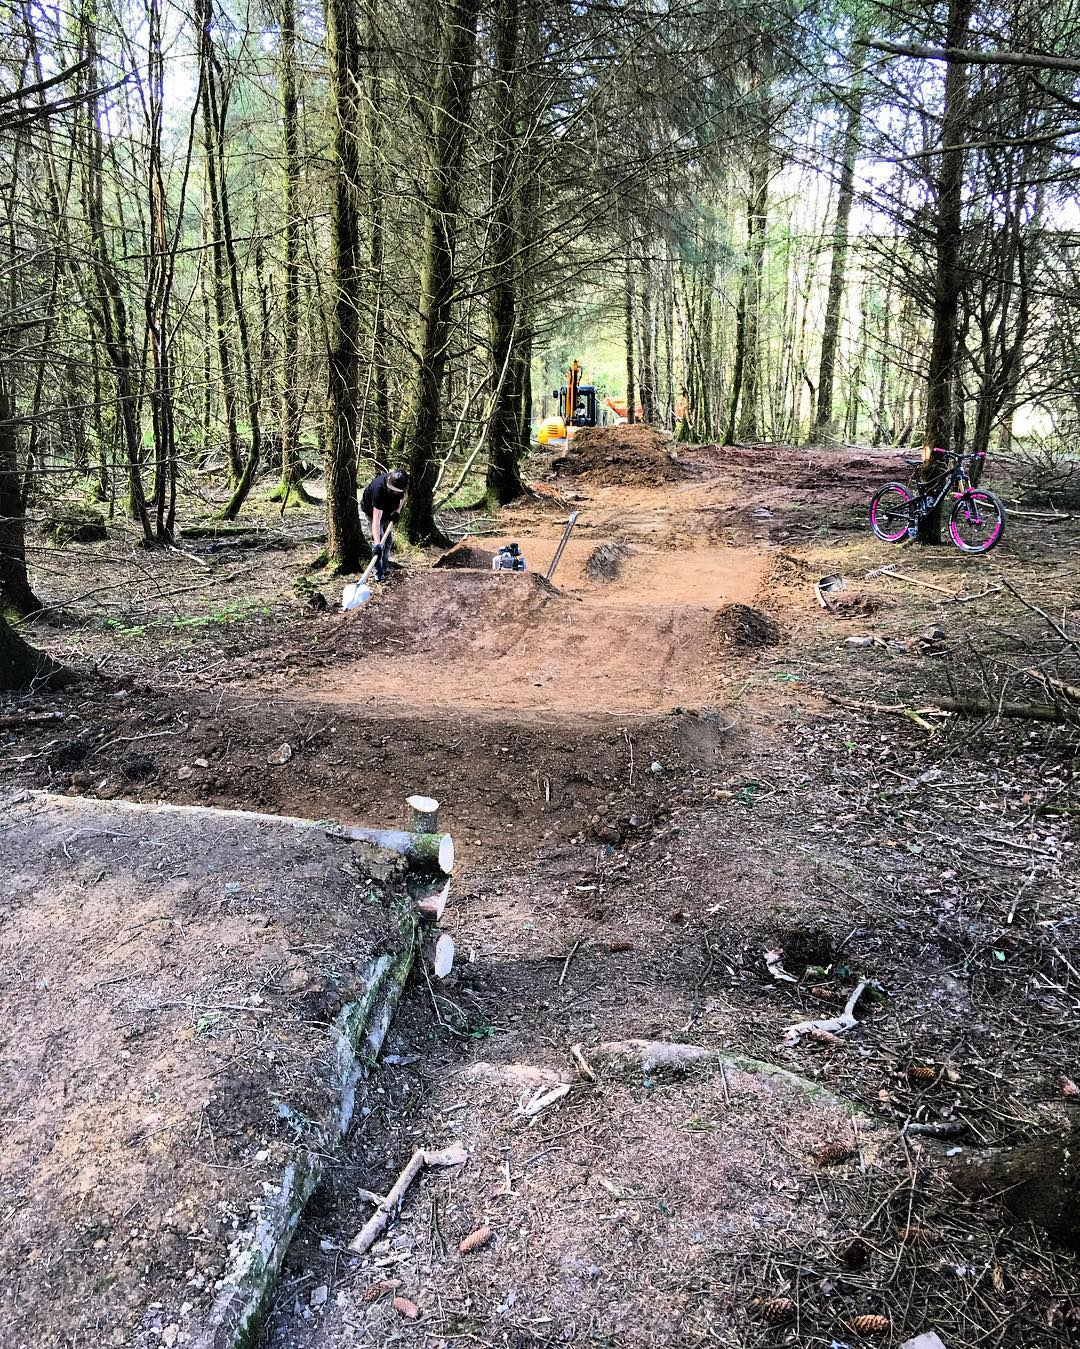 Final touches to the trail today, turned out so sick and all done in a week!!! #bikepark #privatetrail #mtb #logjump #dirt